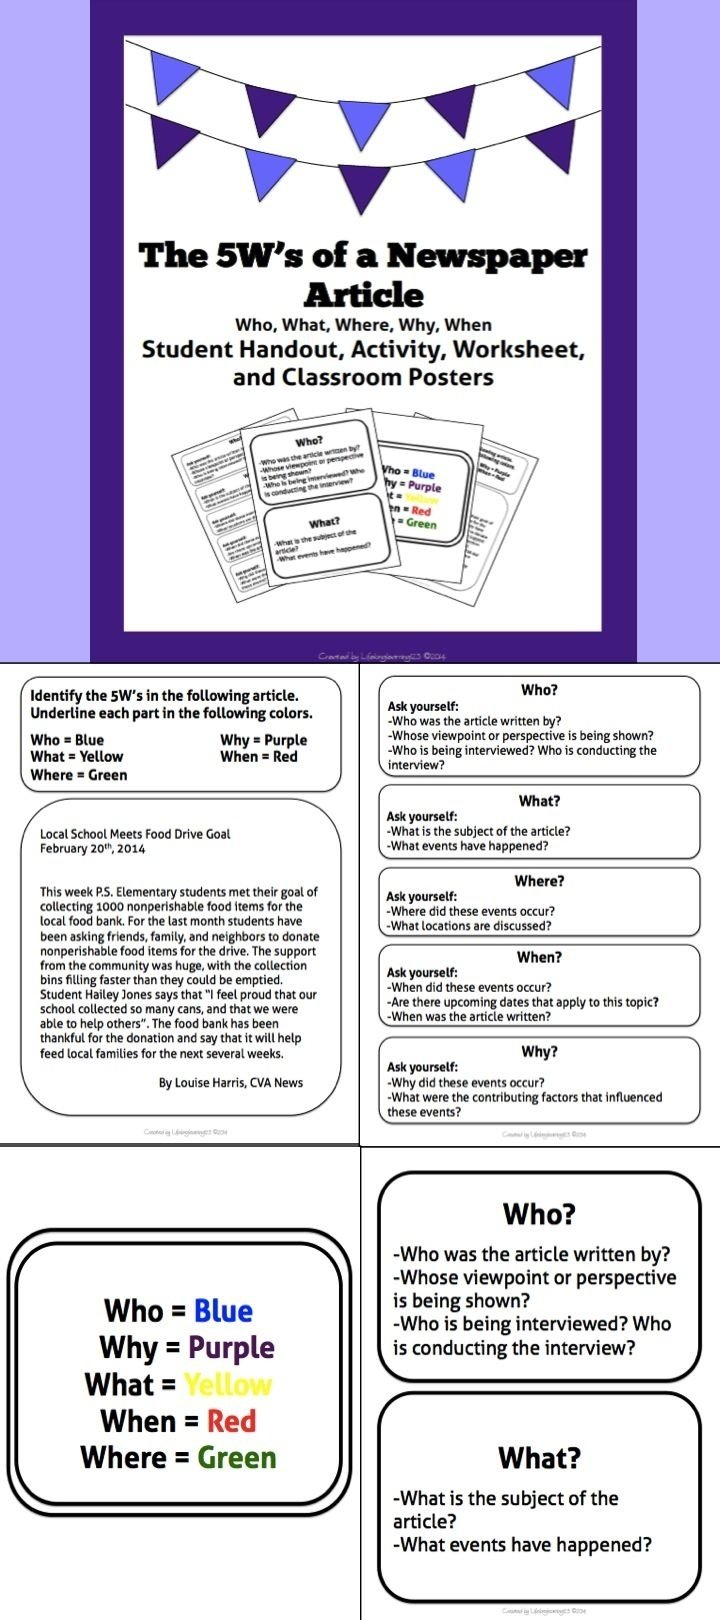 10 Nice High School Newspaper Article Ideas 15 best creating a newspaper for the class room images on pinterest 3